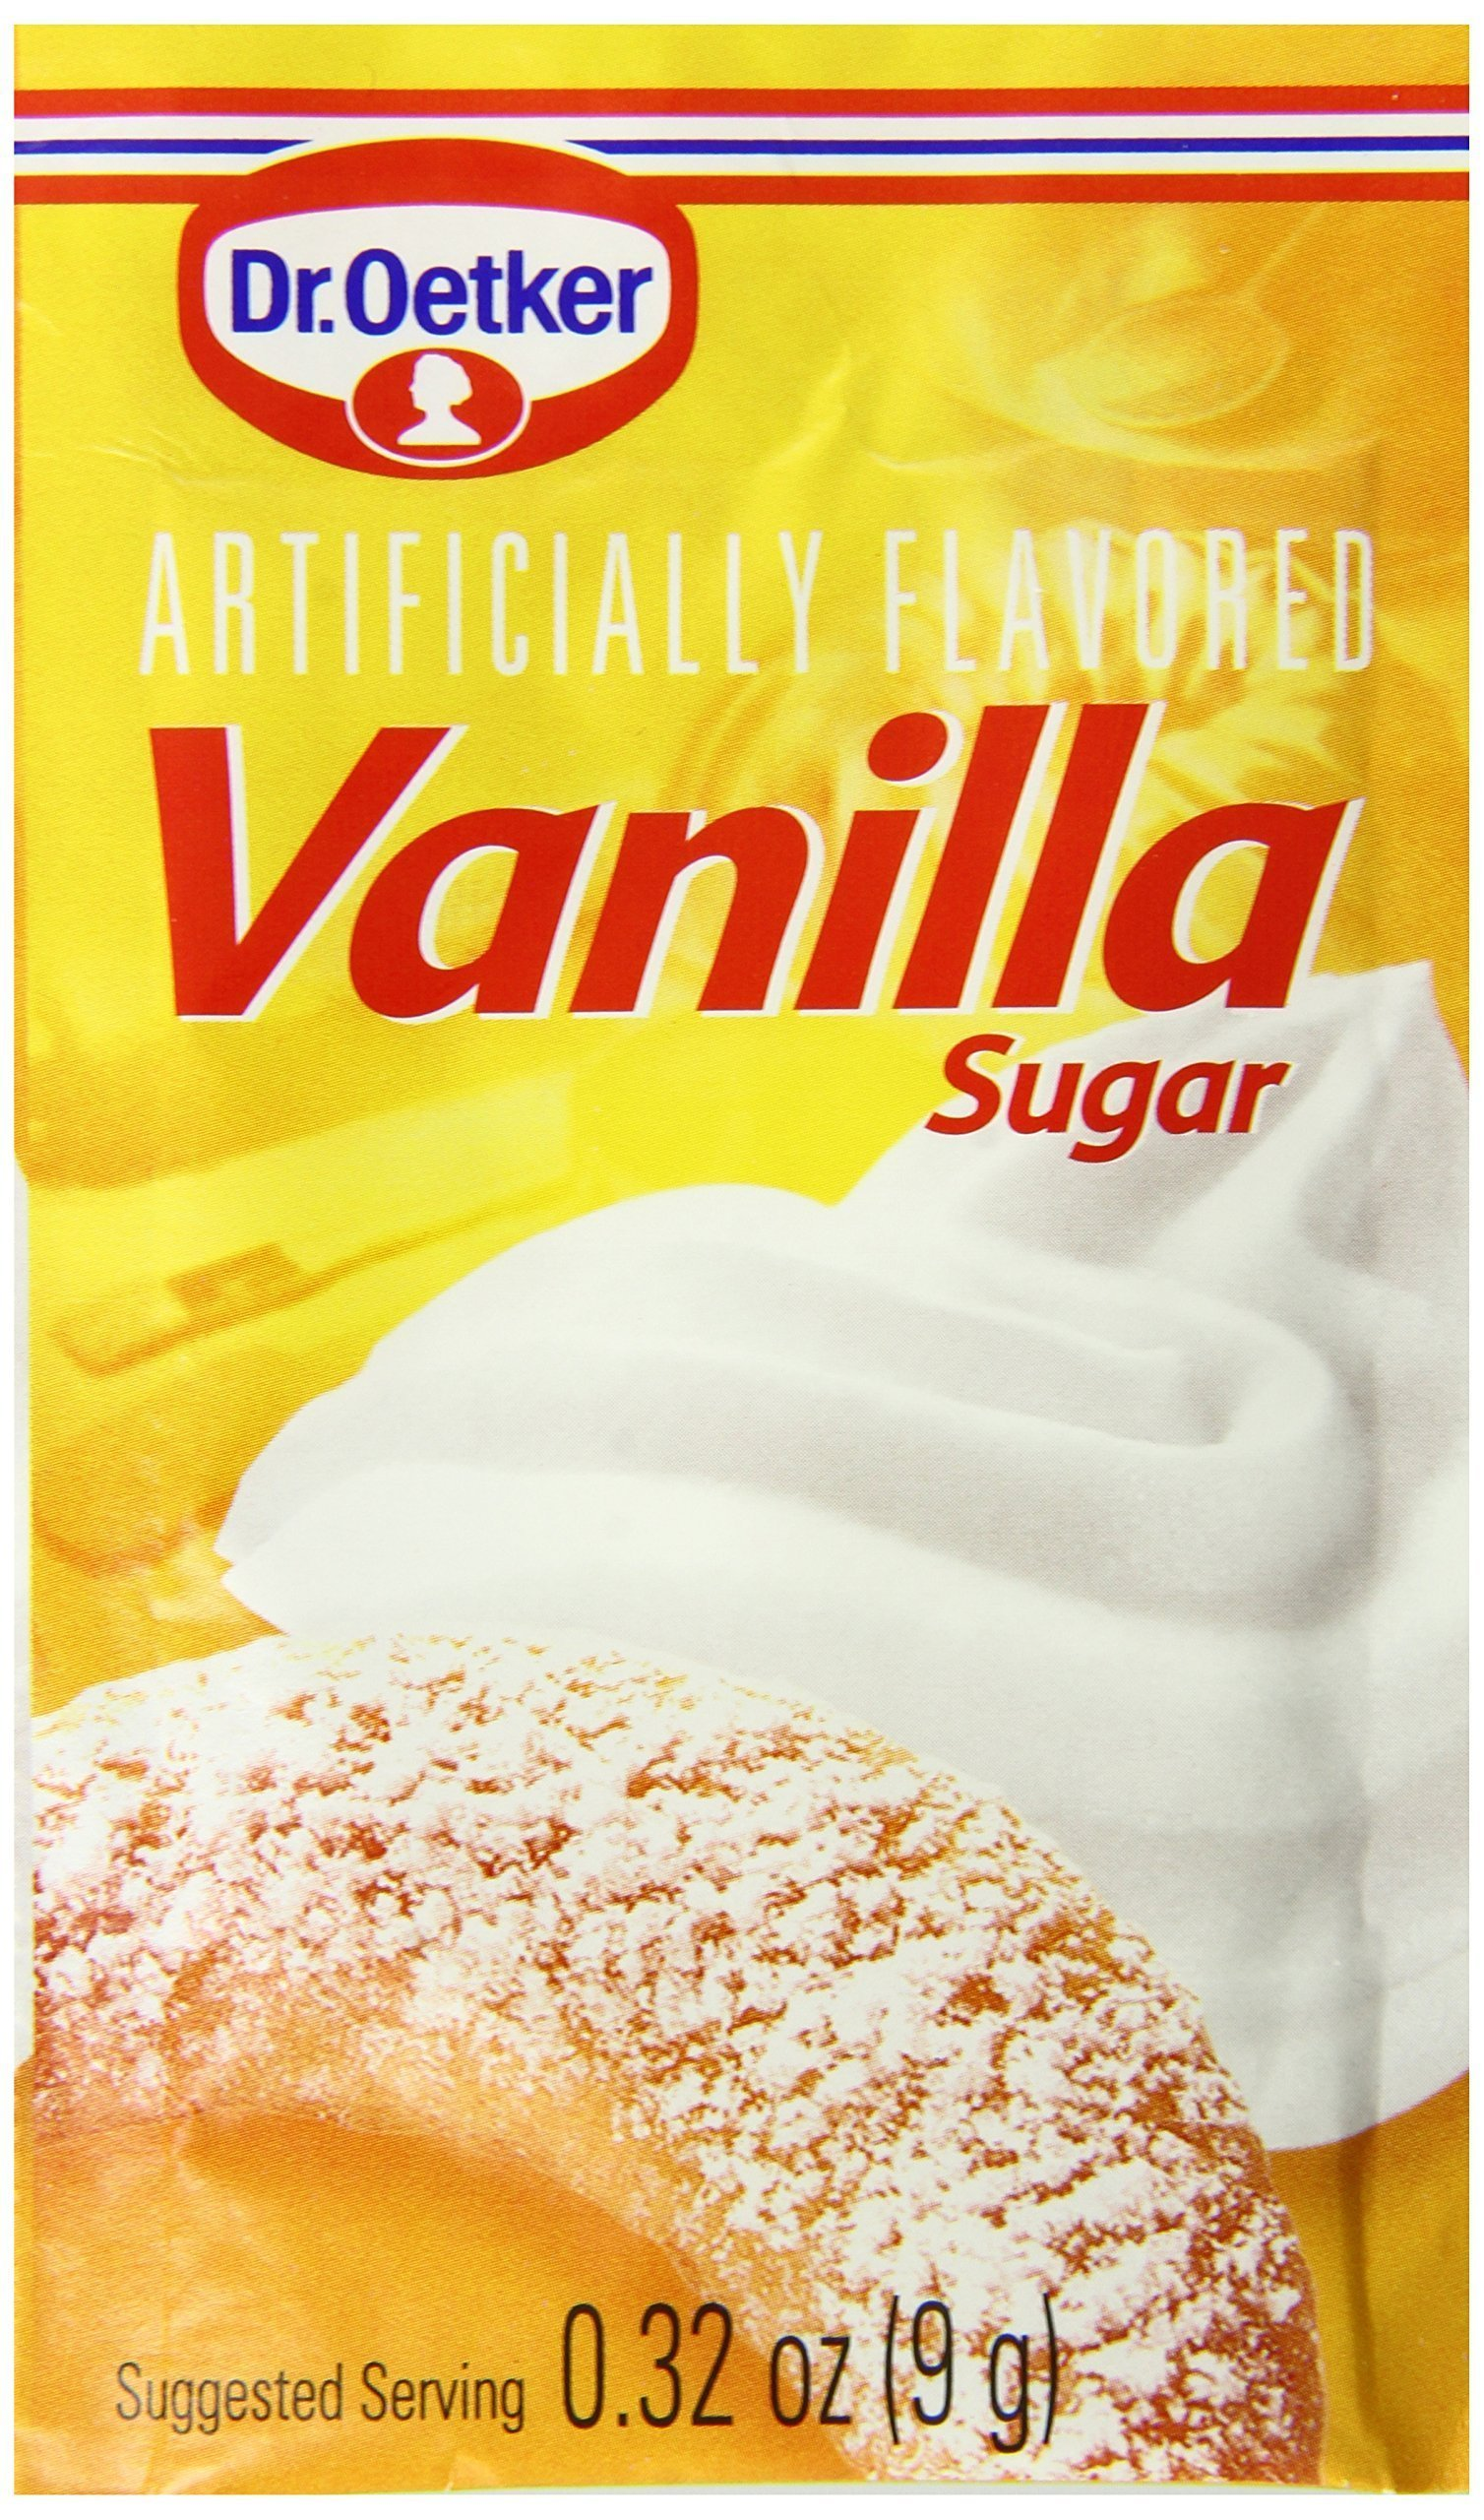 Dr. Oetker Vanilla Sugar, .32 oz., 12 Count